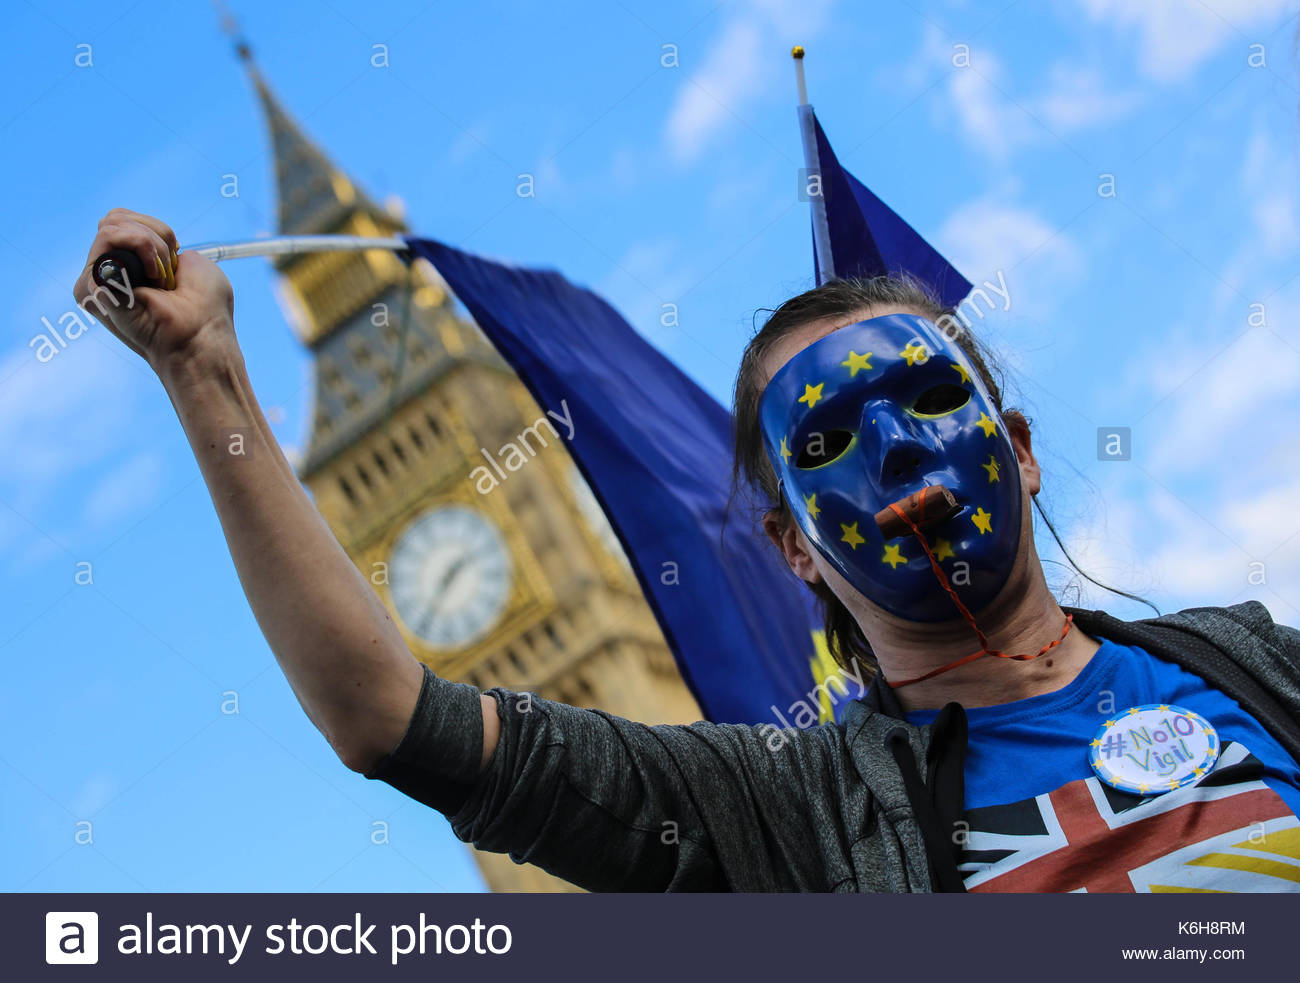 A masked anti-Brexit pro-EU supporter waves a blue flag at a rally in Central London which was held to protest against the whole Brexit process - Stock Image